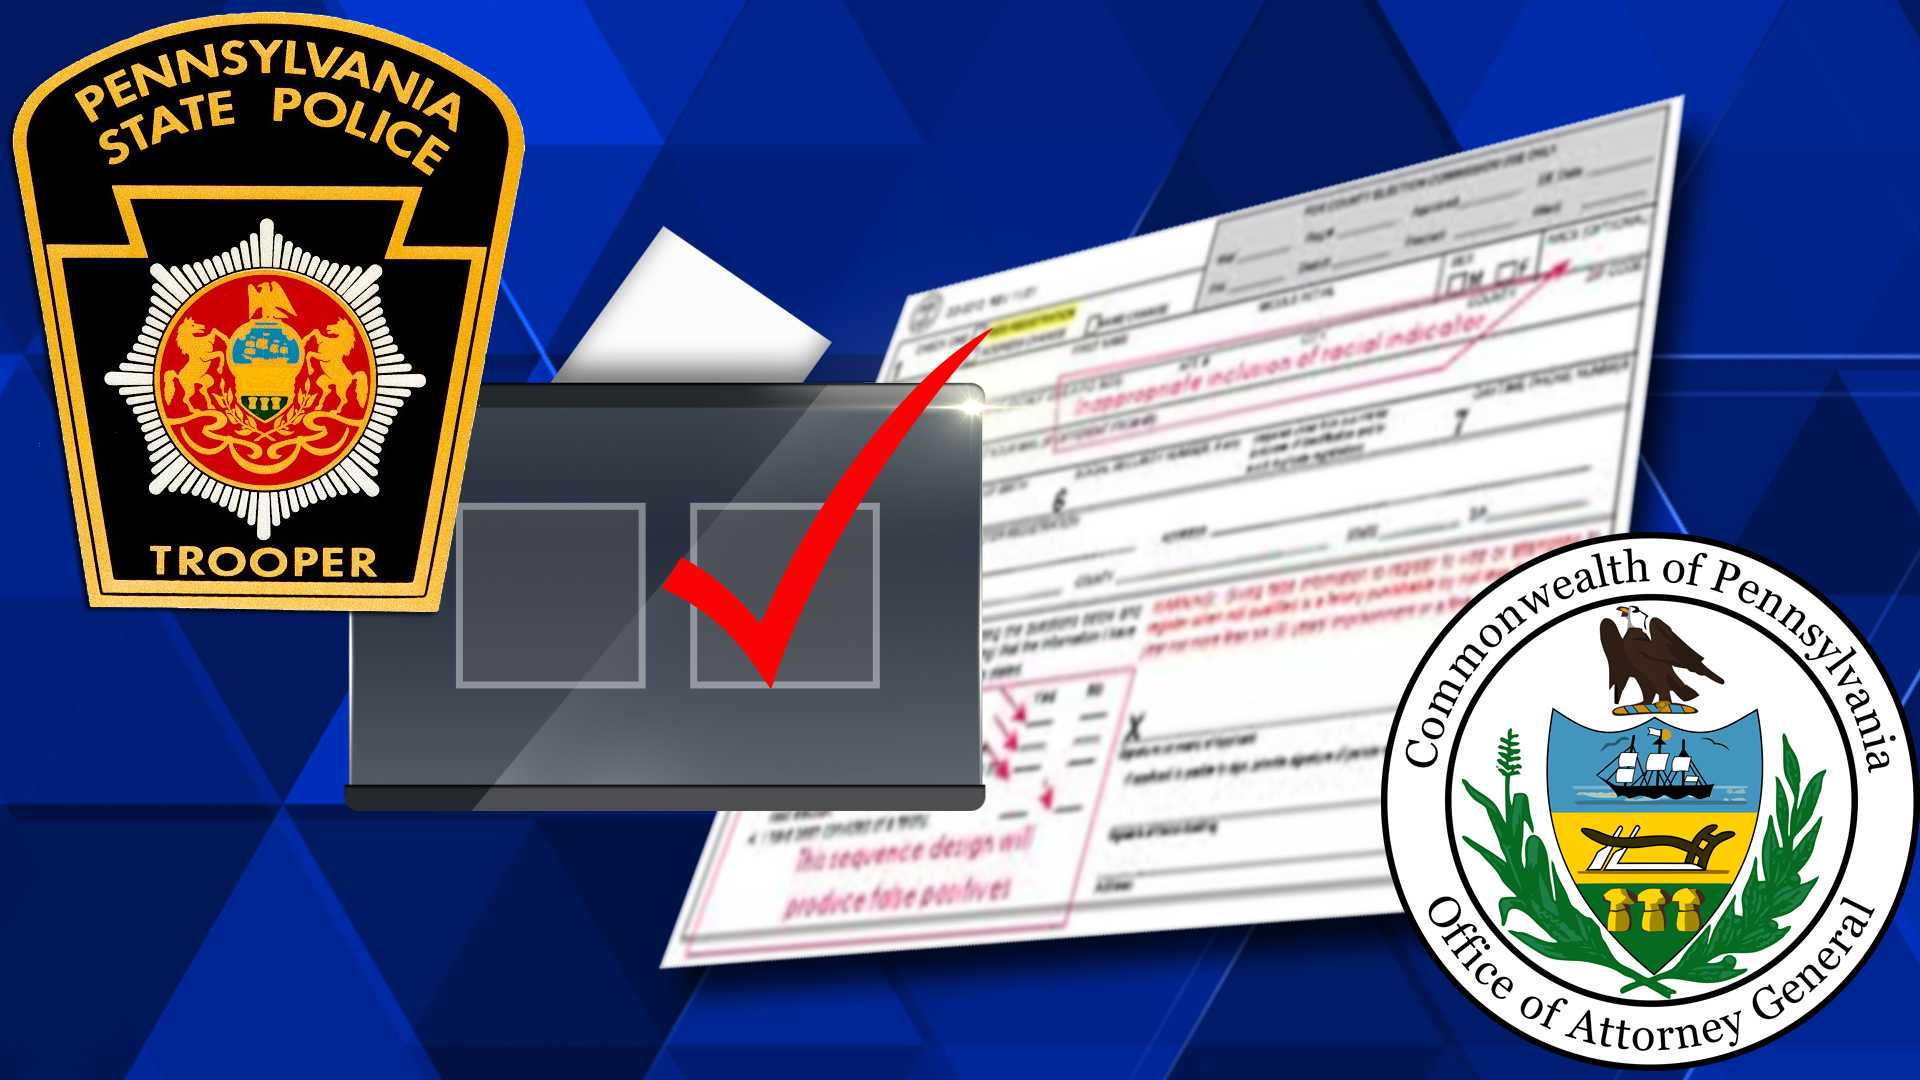 PA Voter Registration Irregularities Investigation